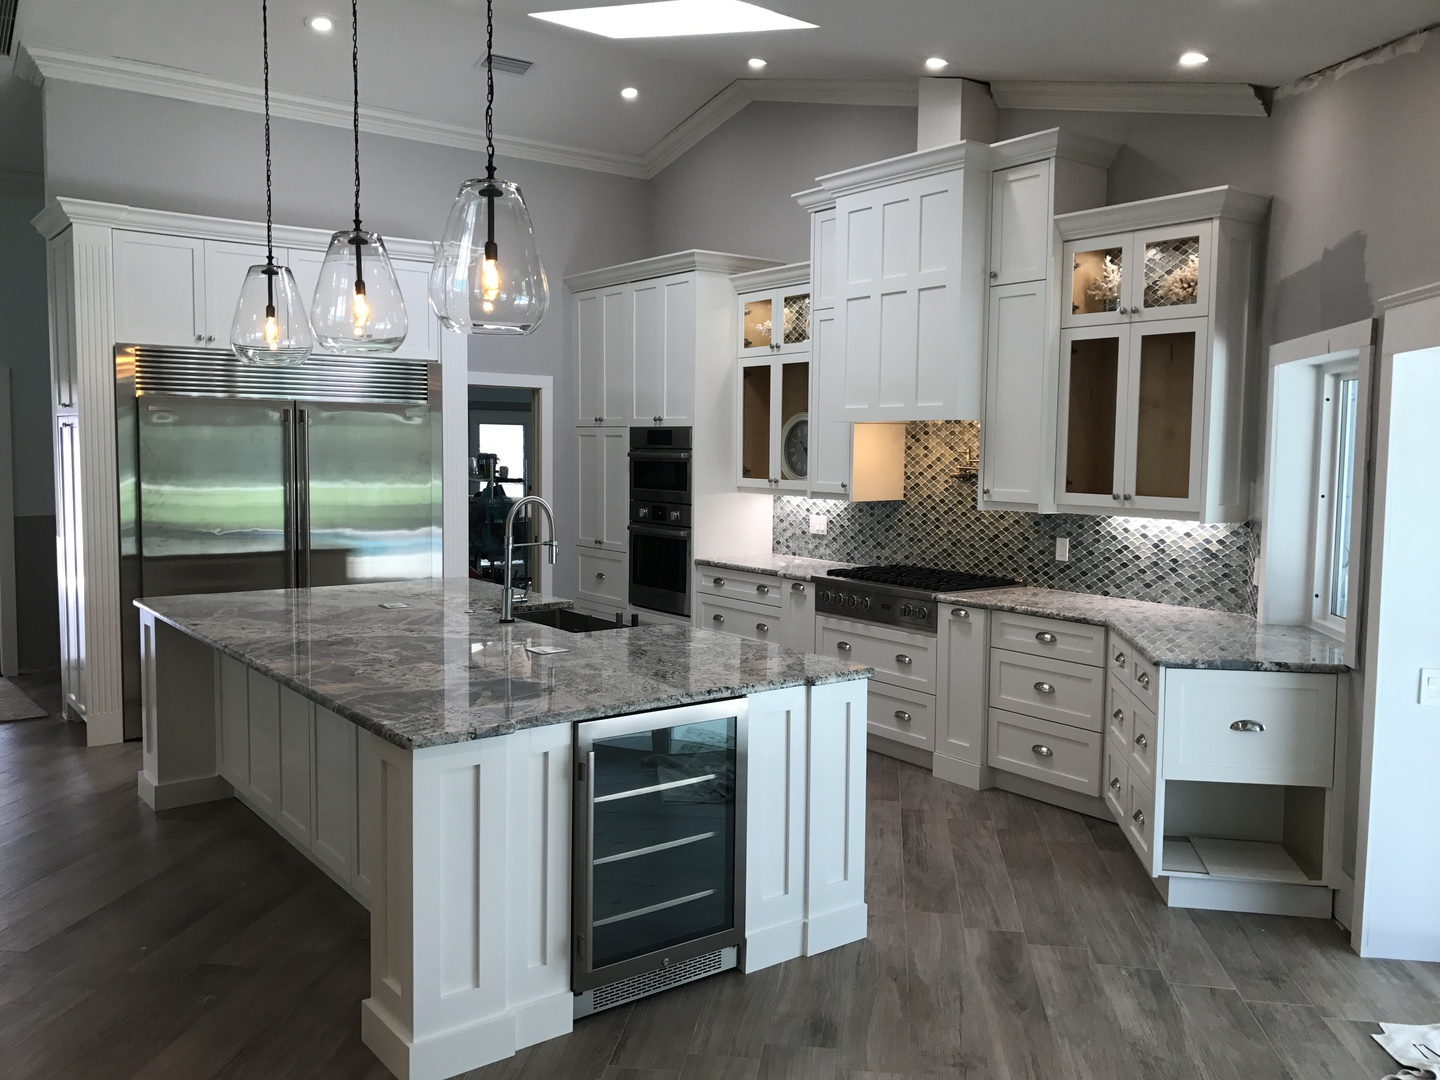 Delicieux Home   Jacobs Cabinets, Quality Cabinets At An Affordable Price